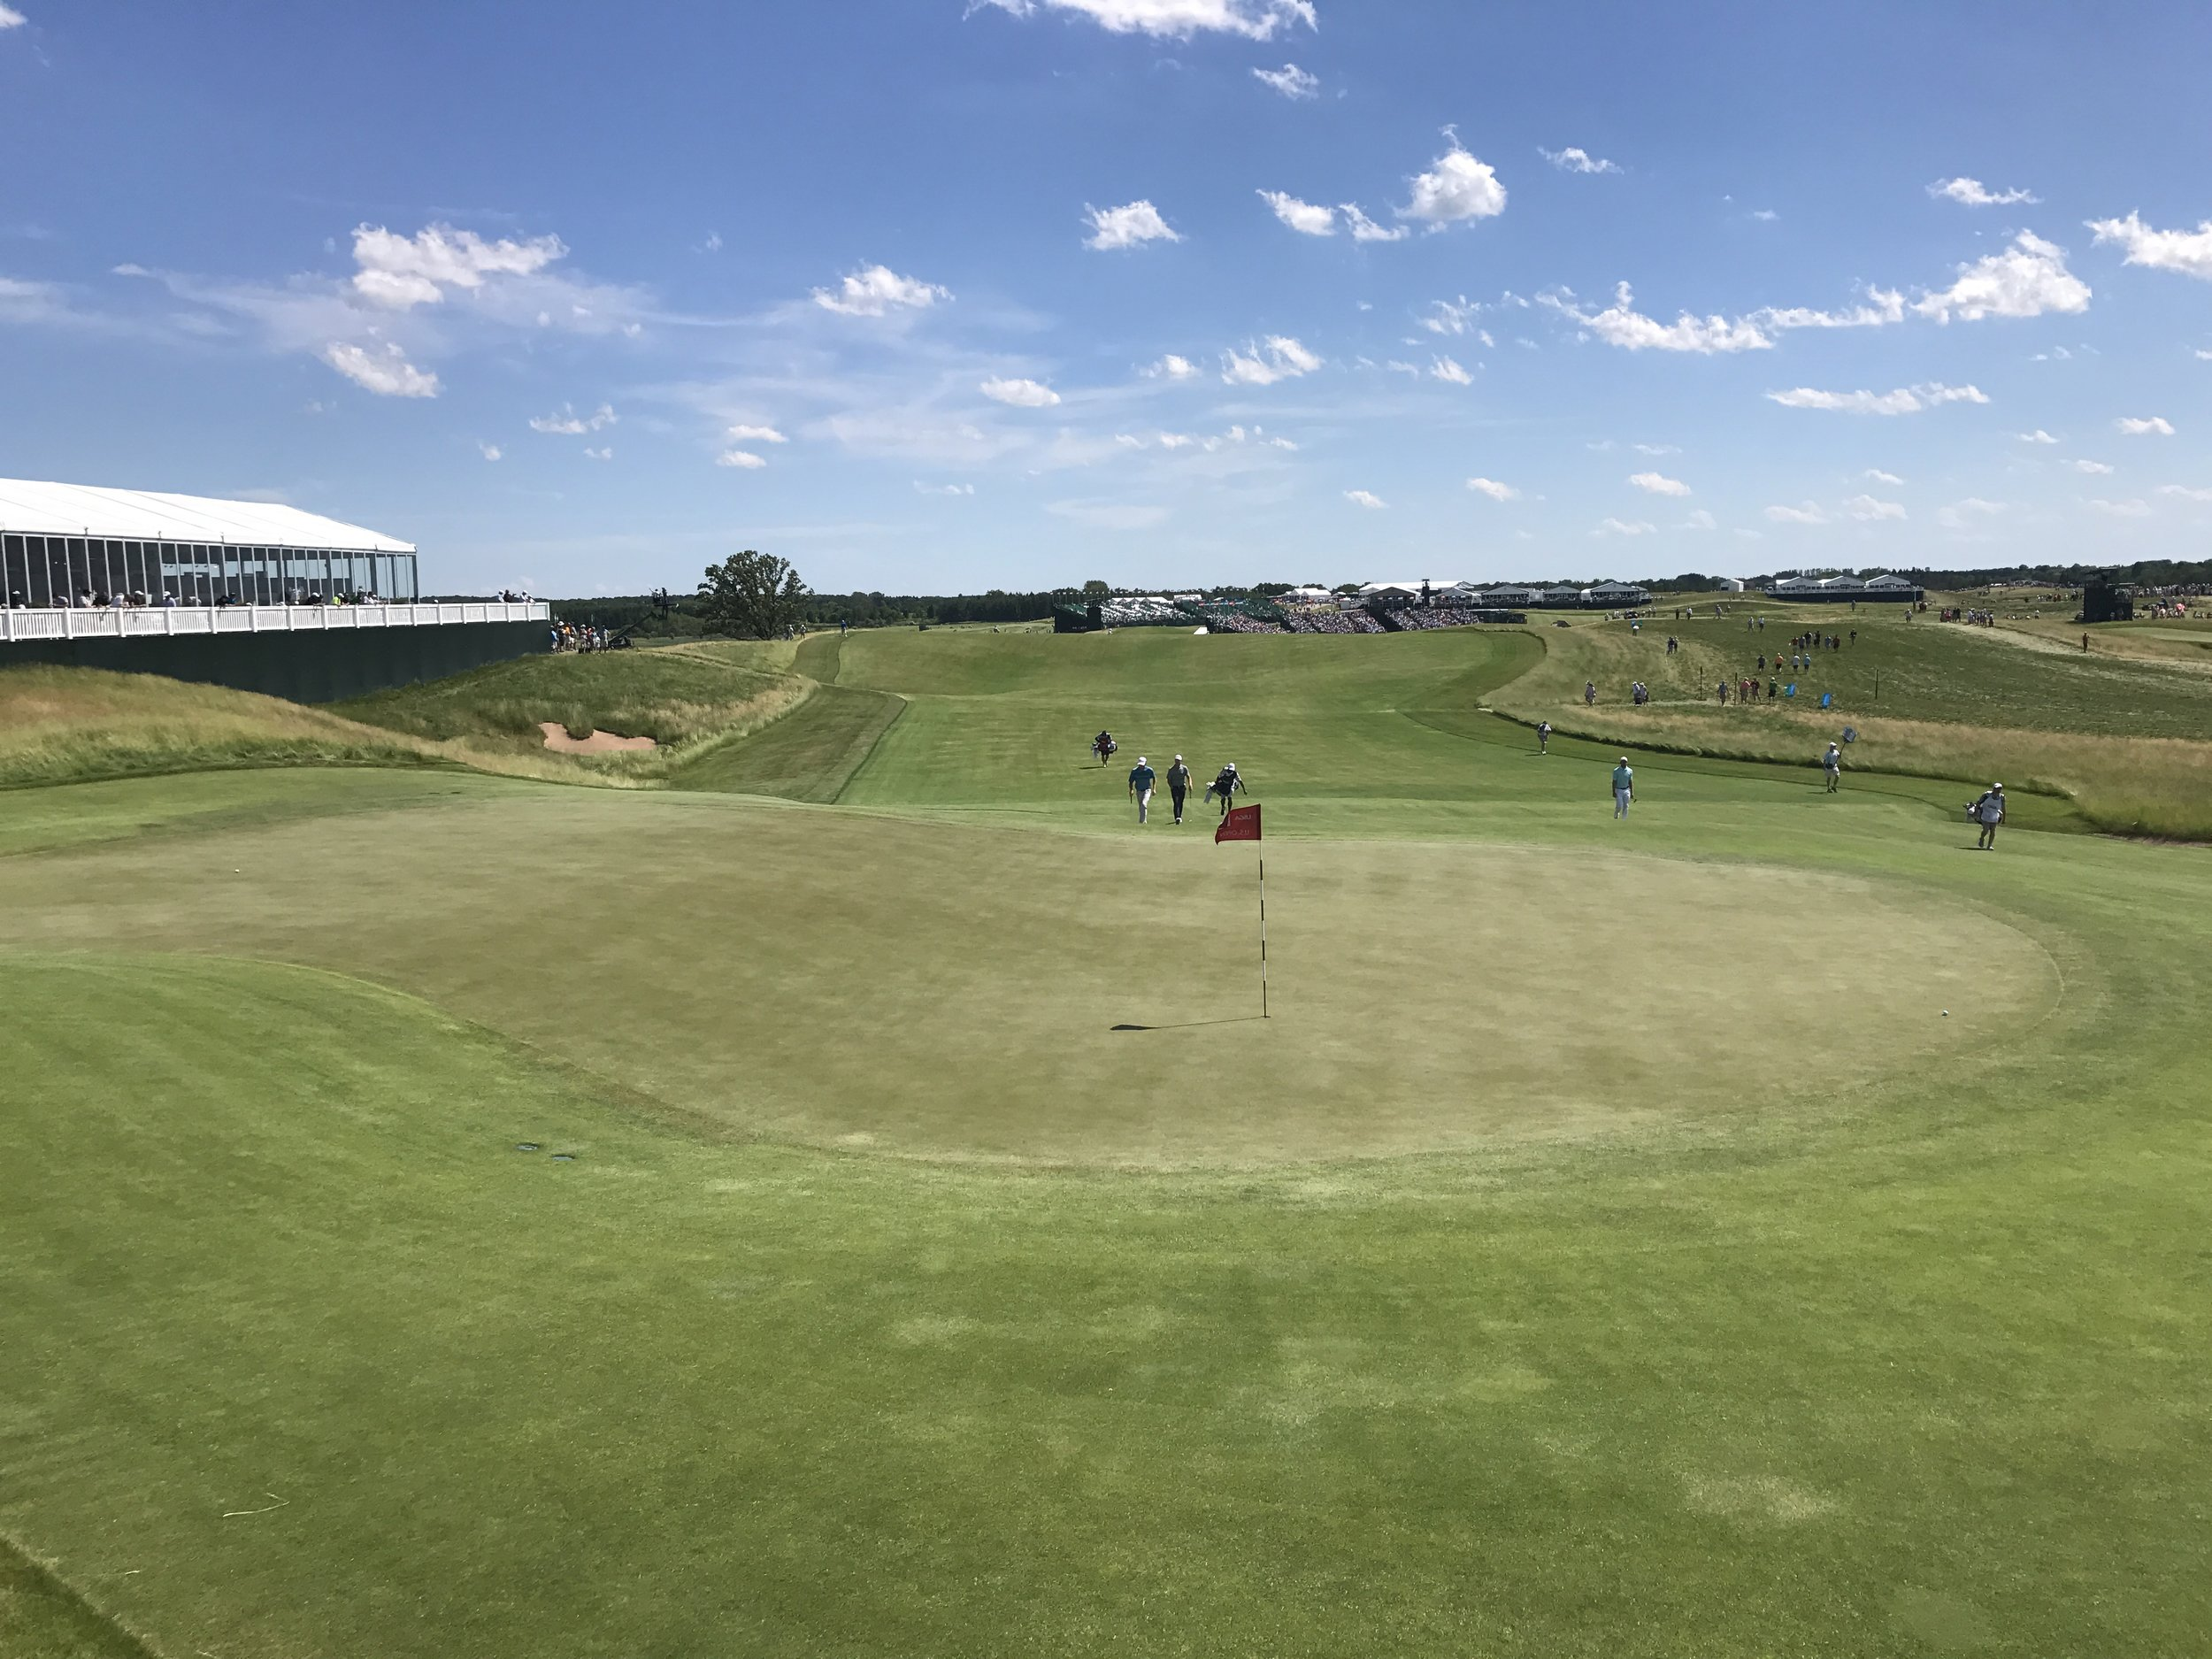 Day 9 - Back to Erin Hills for the final day of the US Open on a very windy day, with just one Aussie left to support:Marc Leishman, who ended up a creditable 17th place. We were also really happy to see and support stars like Ricky Fowler, Hideki Matsuyama, Sergio Garcia, and of course Brooks Koepka.